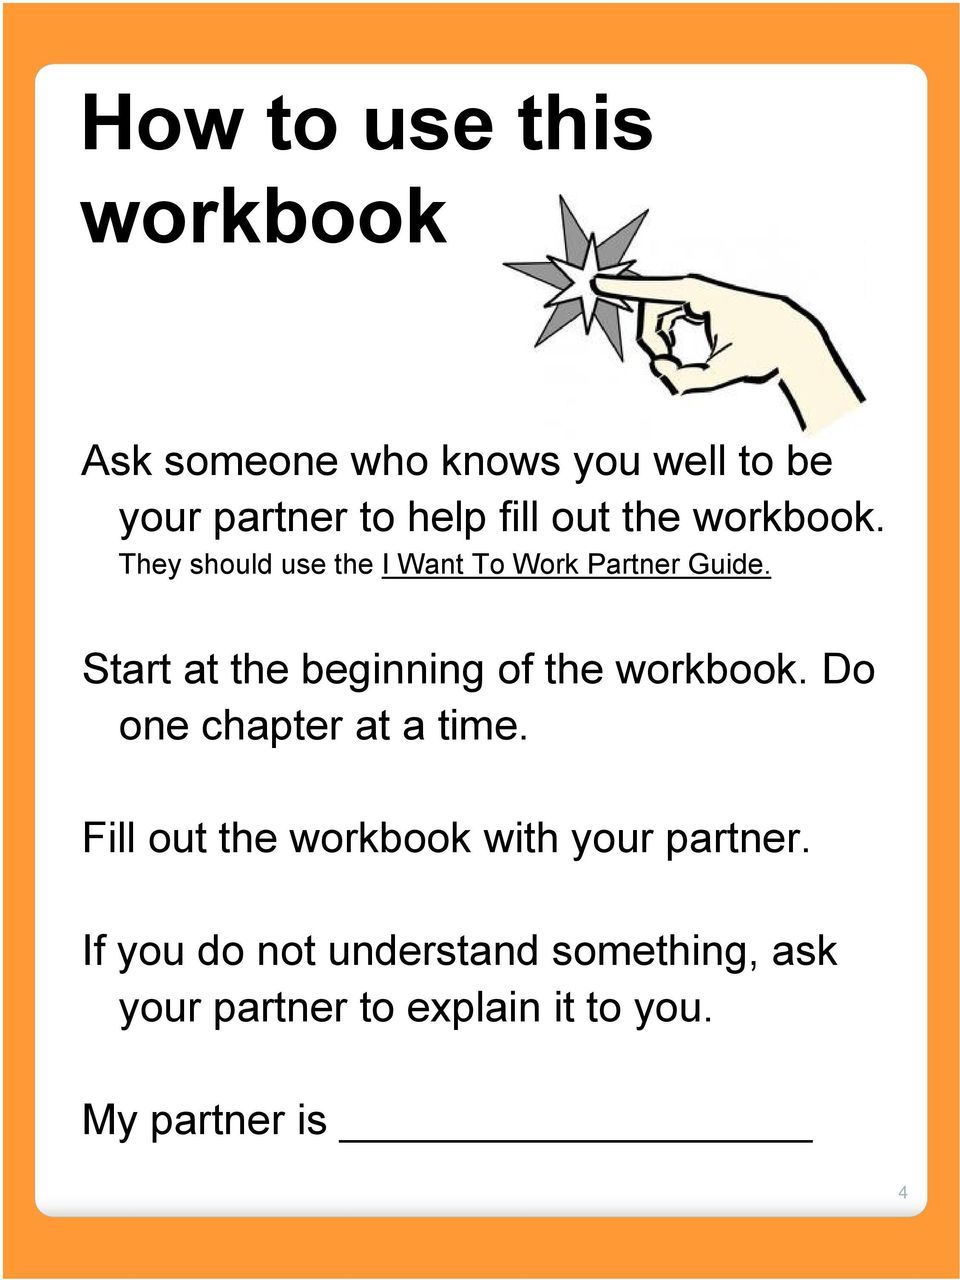 Start at the beginning of the workbook. Do one chapter at a time.